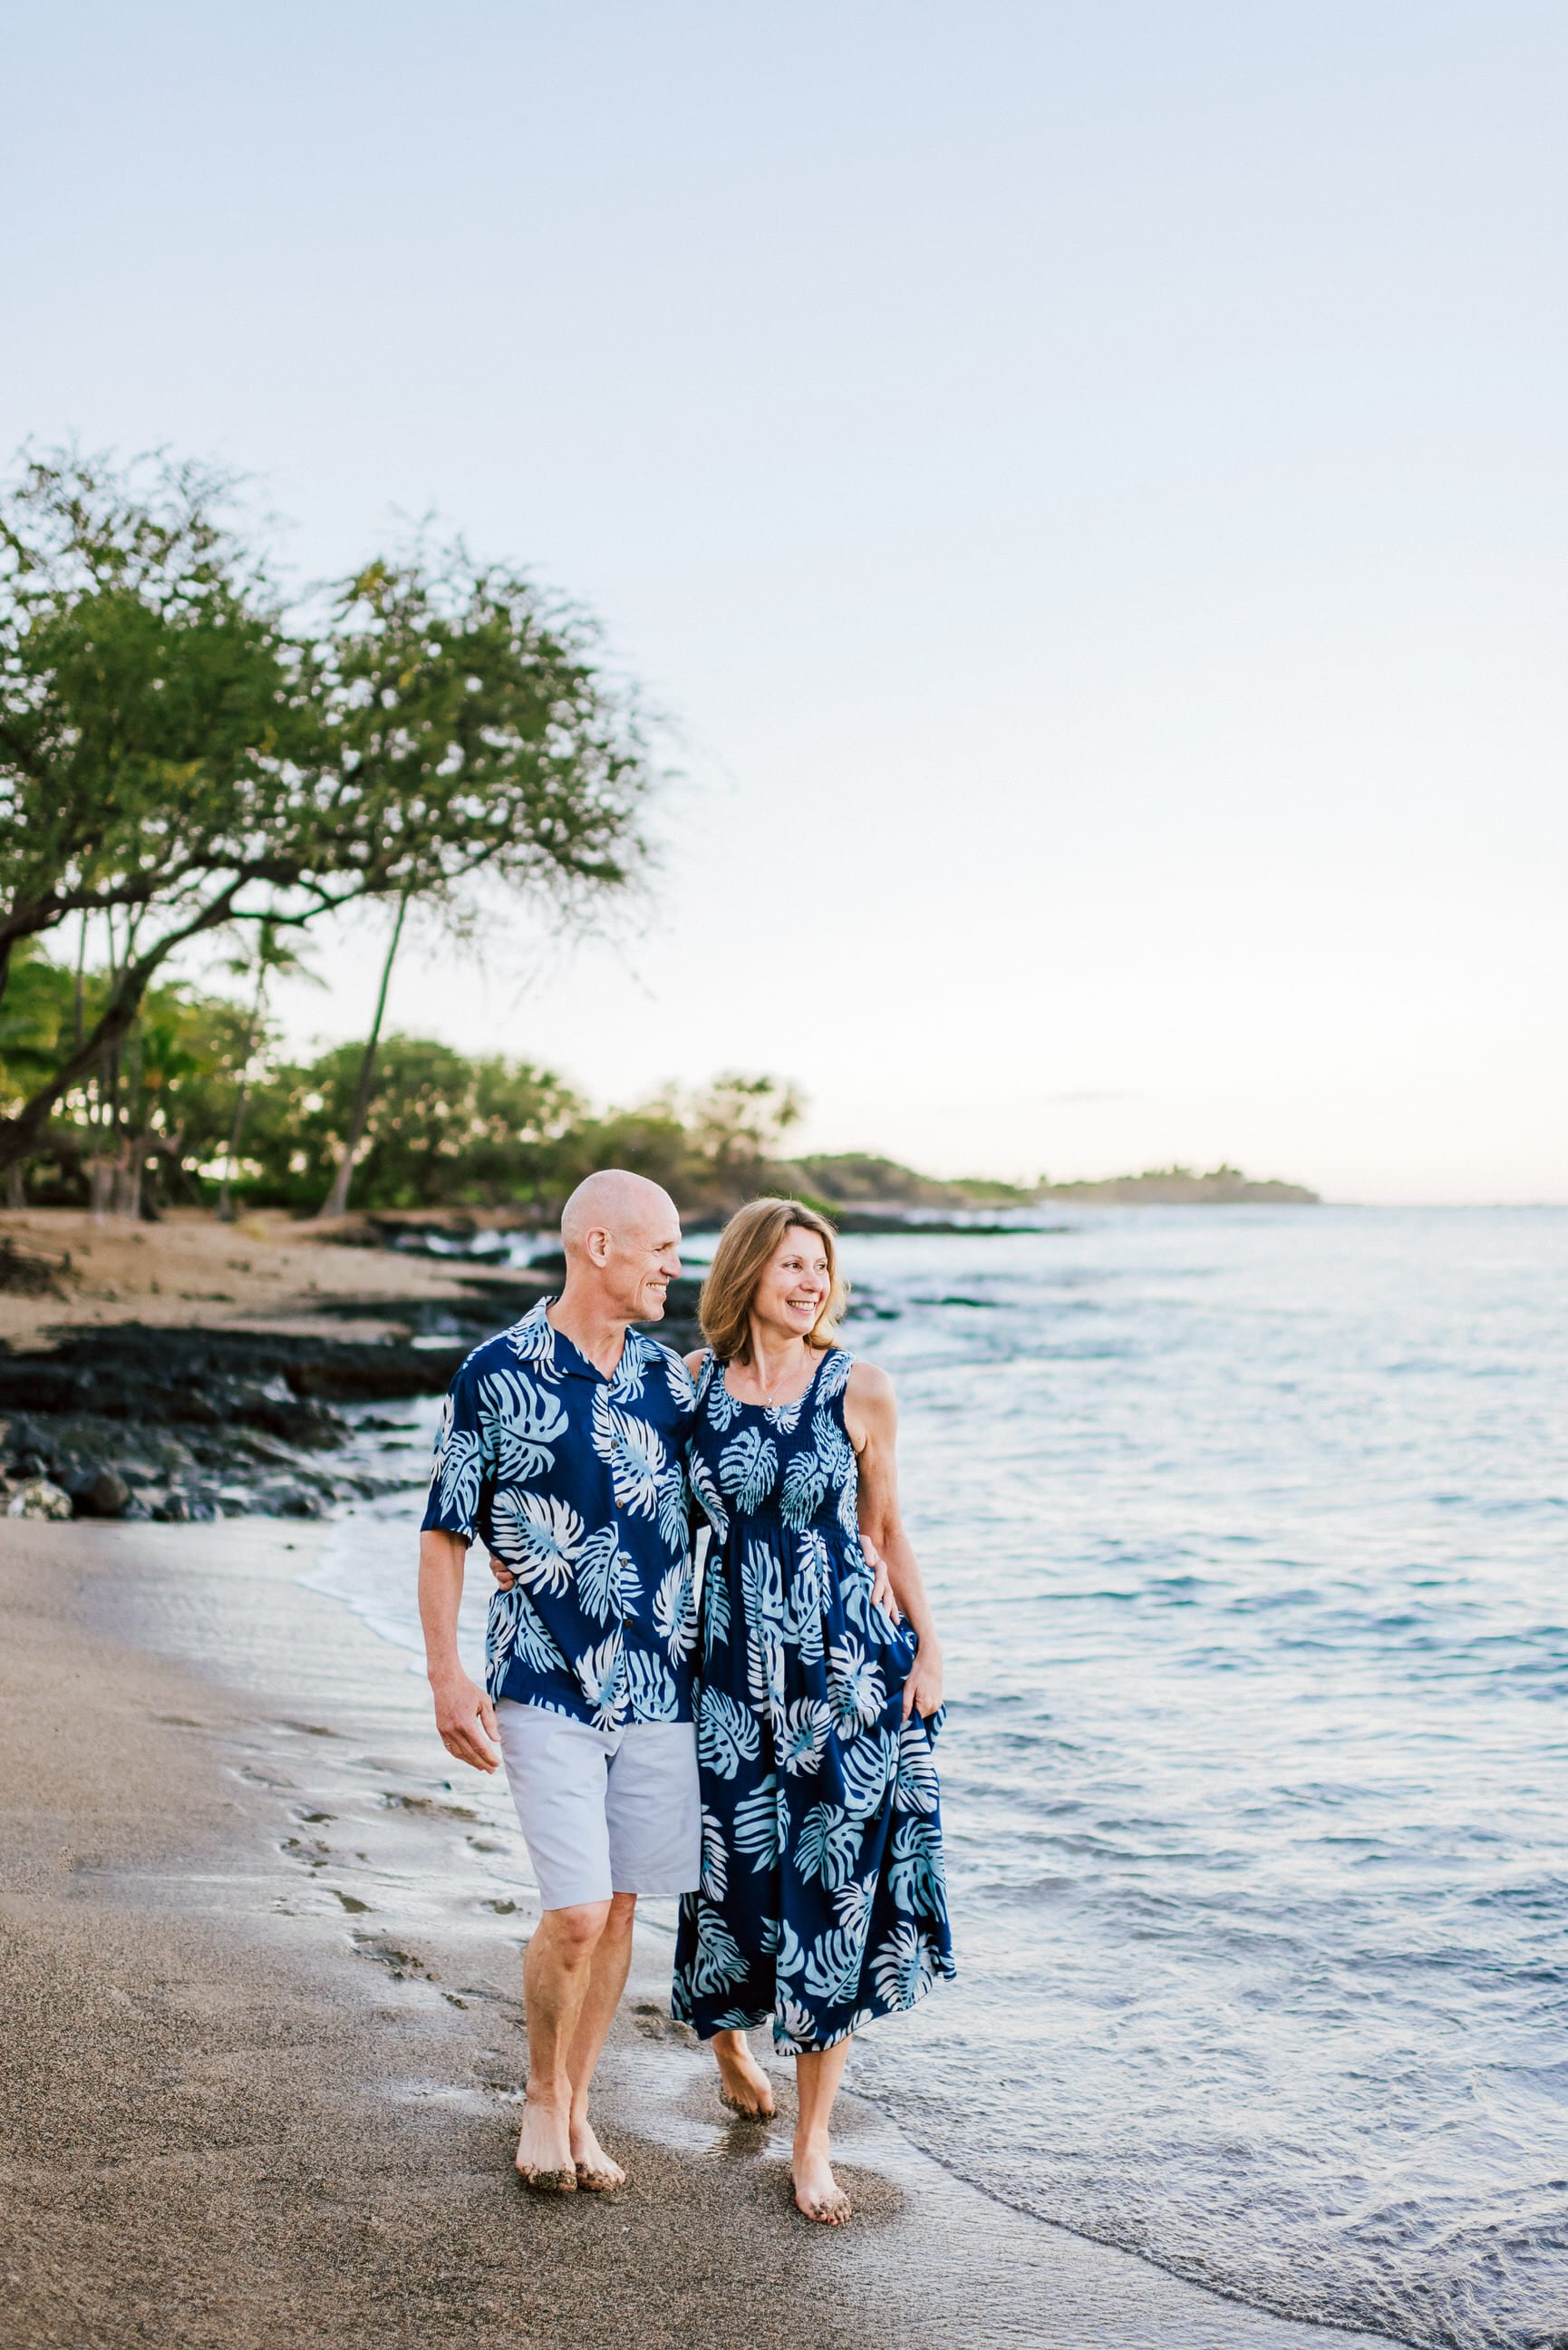 Big-Island-Photographers-Waikoloa-Family-Photos9.jpg